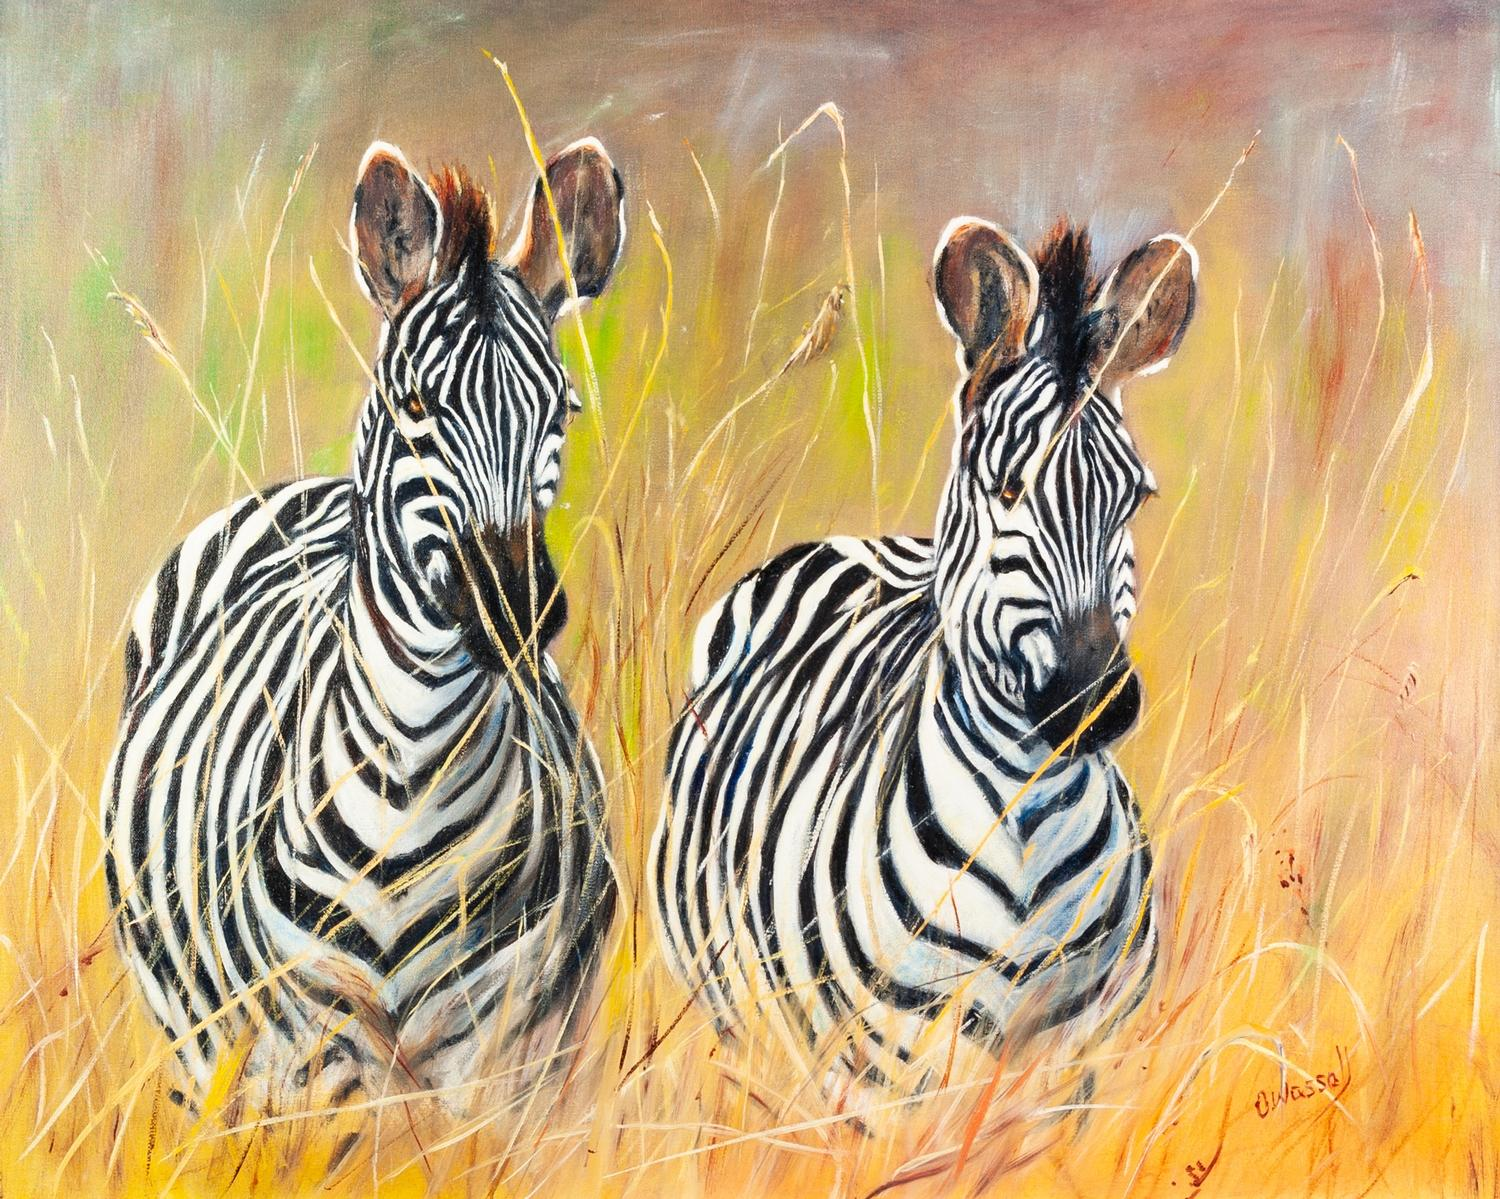 """Lot 282 - OLIVE WASSALL (Isle of Man) OIL PAINTING ON CANVAS 'Zebra' Signed lower right 15 1/2"""" x 19 1/2"""" ("""